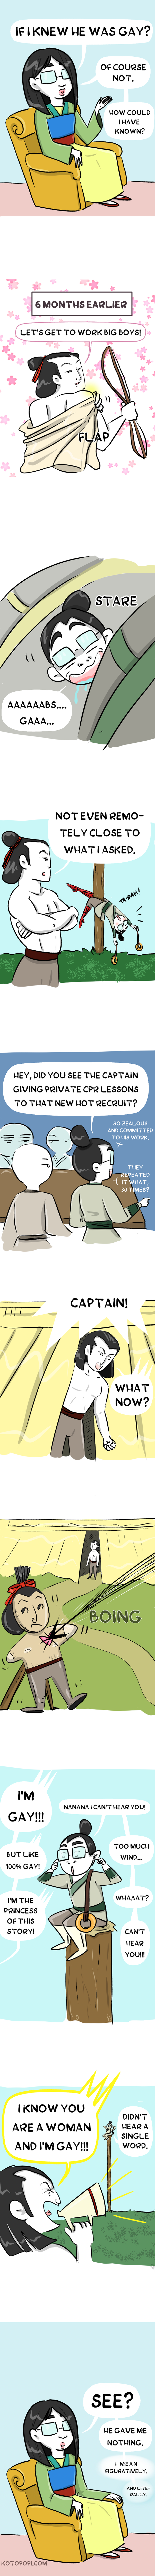 funny comics about disney mulan